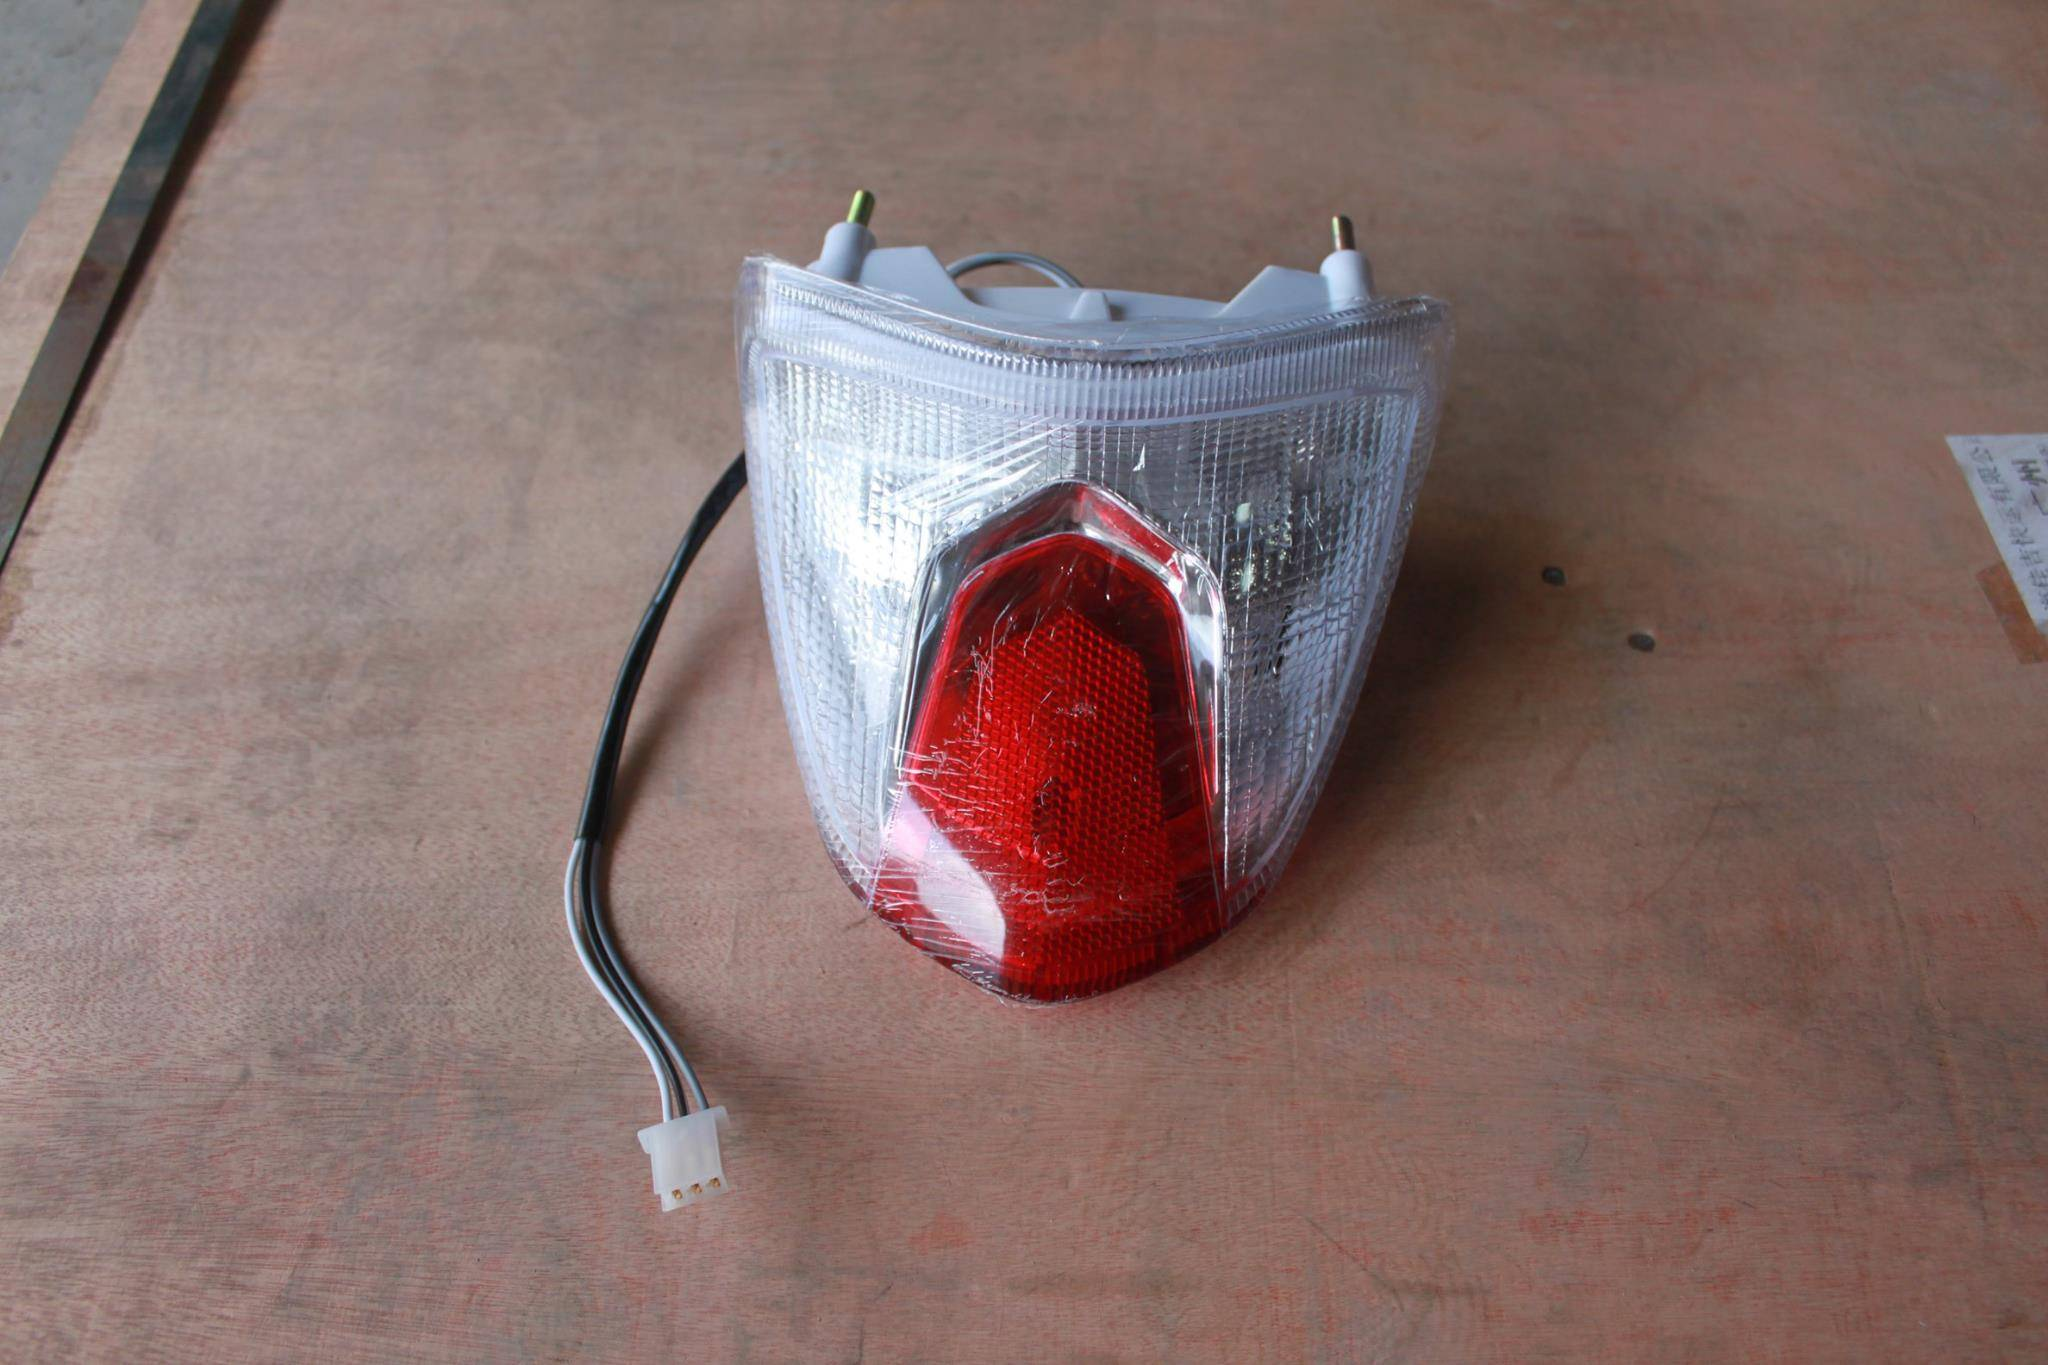 ALDRICH FOR APACHE TAIL LAMP, GOOD QUALITY!